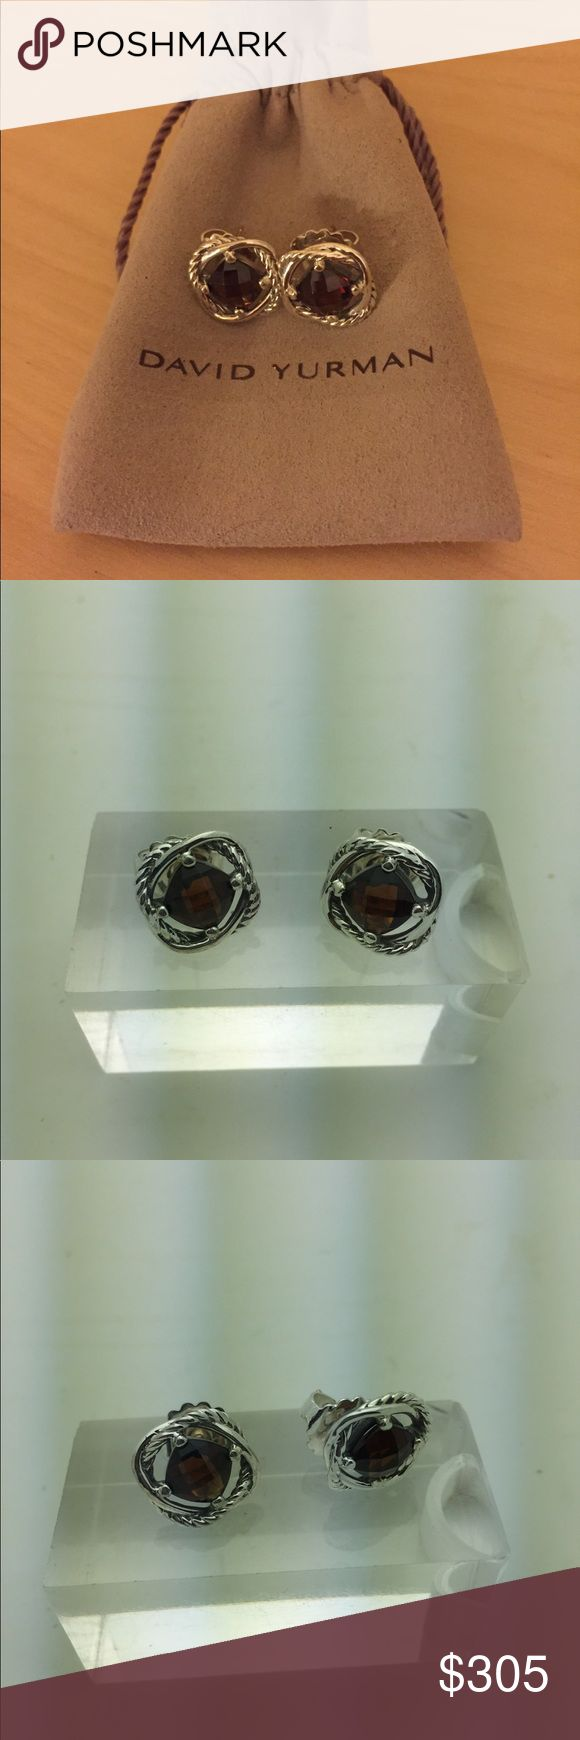 David Yurman Infinity Earrings Res Garnet 925 David Yurman Authentic Infinity Red Garnet Earrings in Sterling Silver. Condition like New.  Comes with Original DY pouch. David Yurman Jewelry Earrings